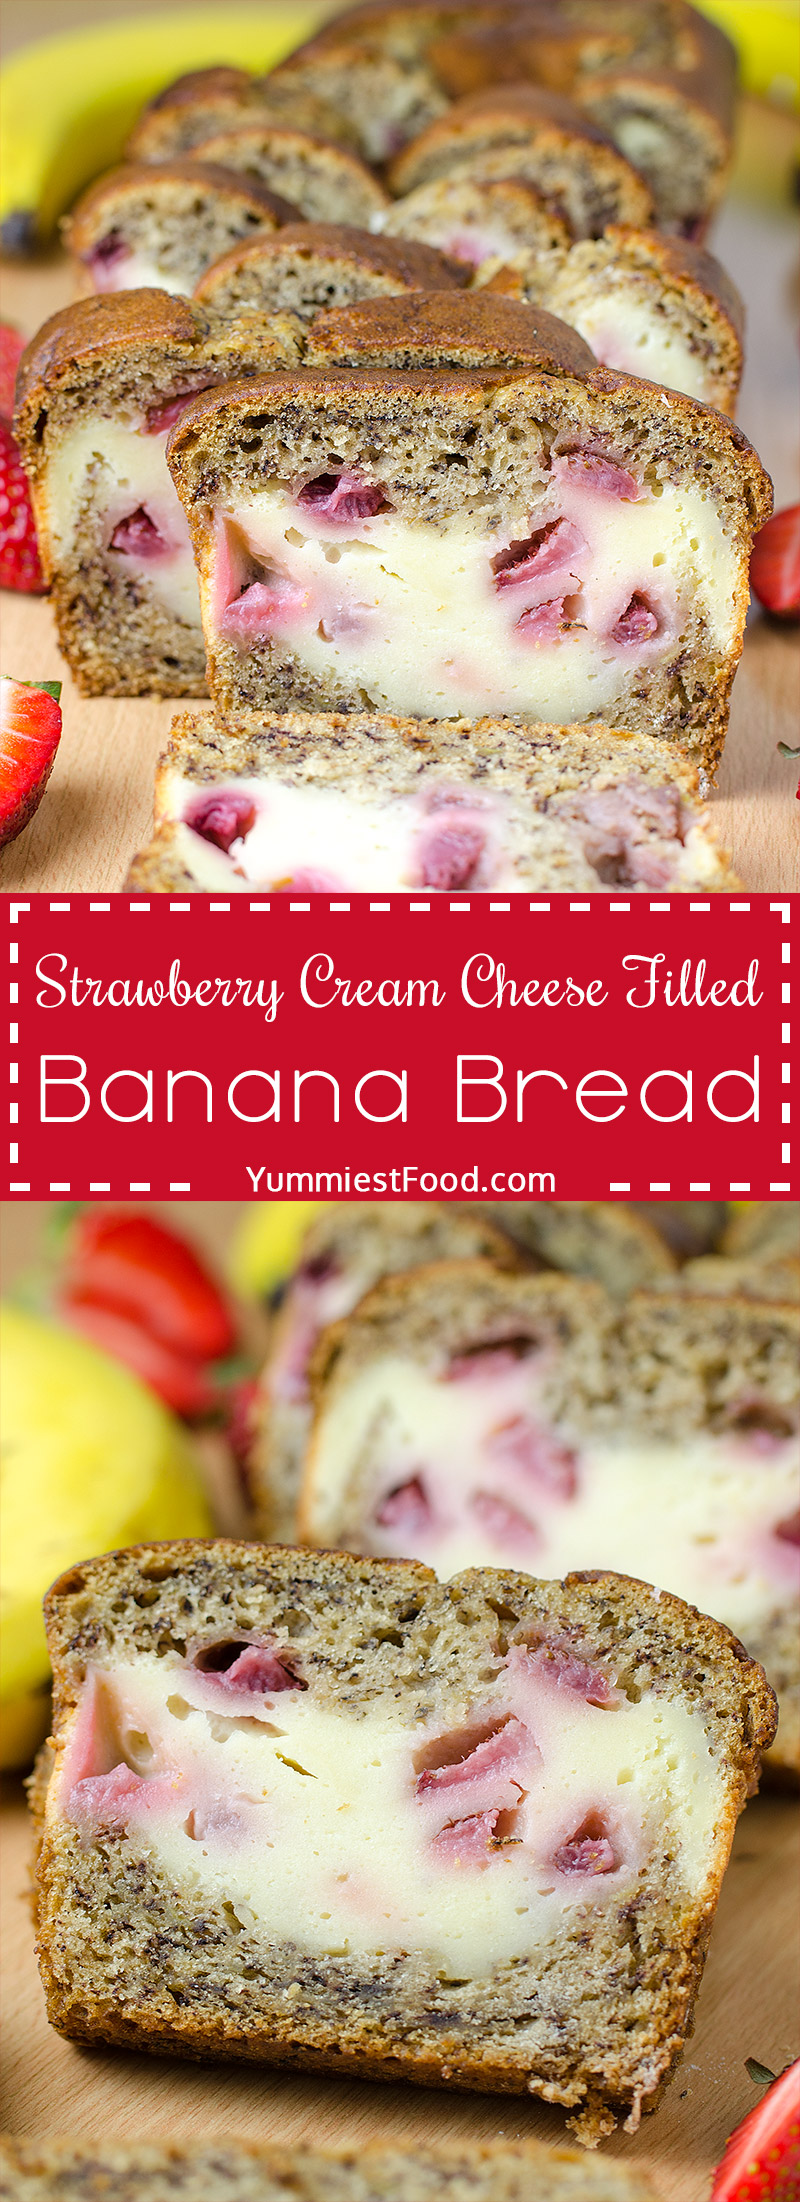 STRAWBERRY CREAM CHEESE FILLED BANANA BREAD - Perfect for breakfast, snack and dessert.